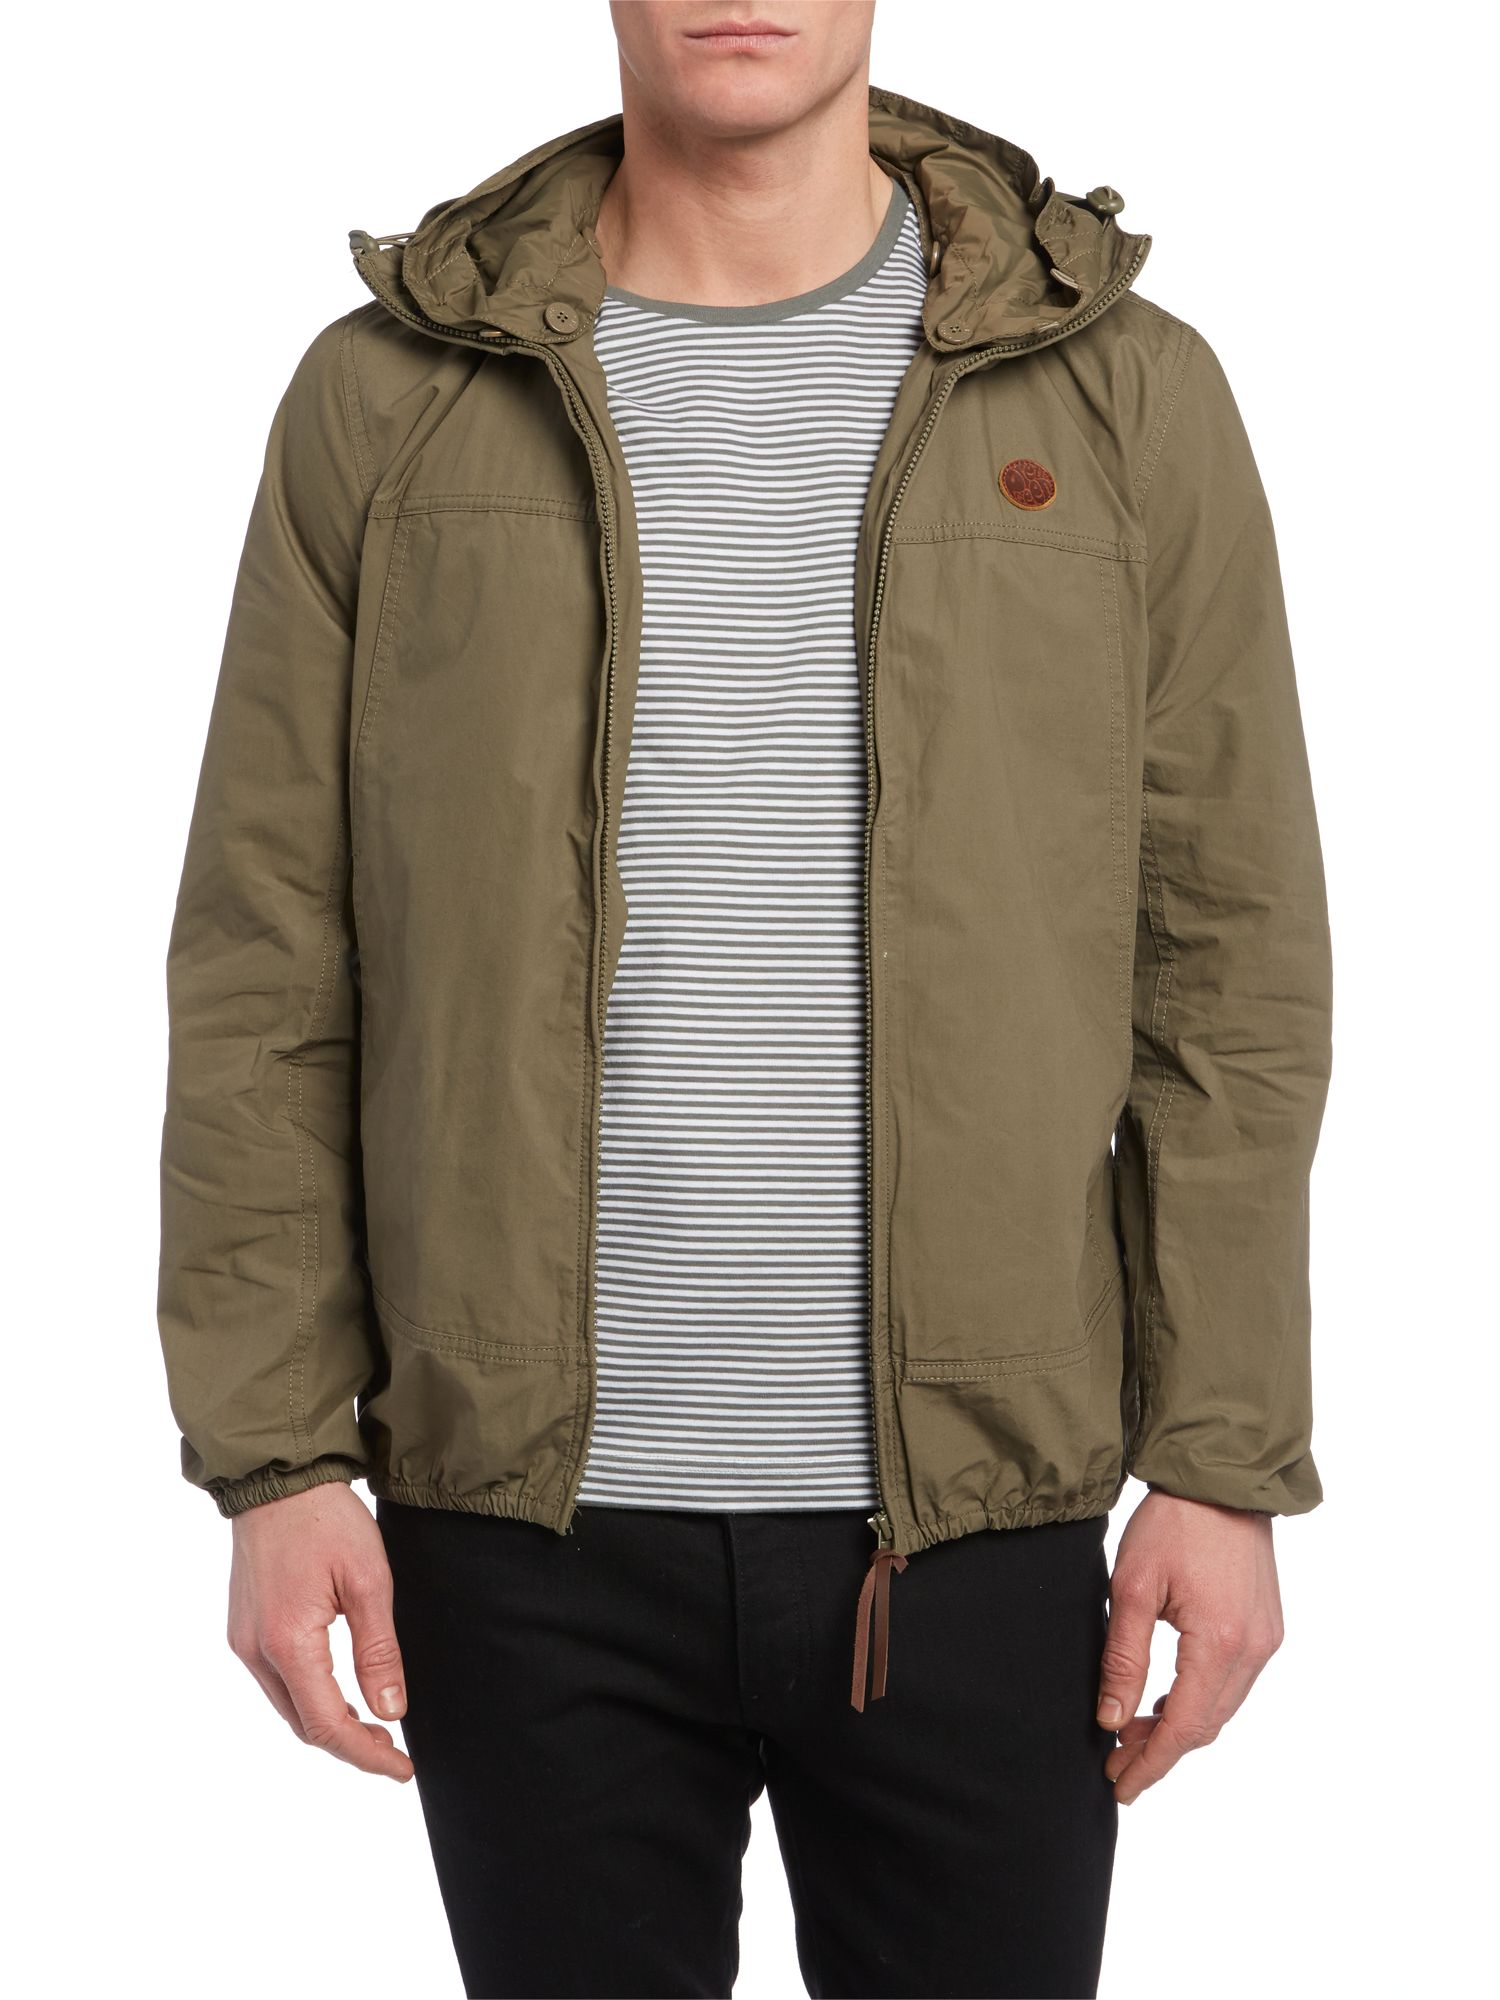 Two pocket hooded festival jacket